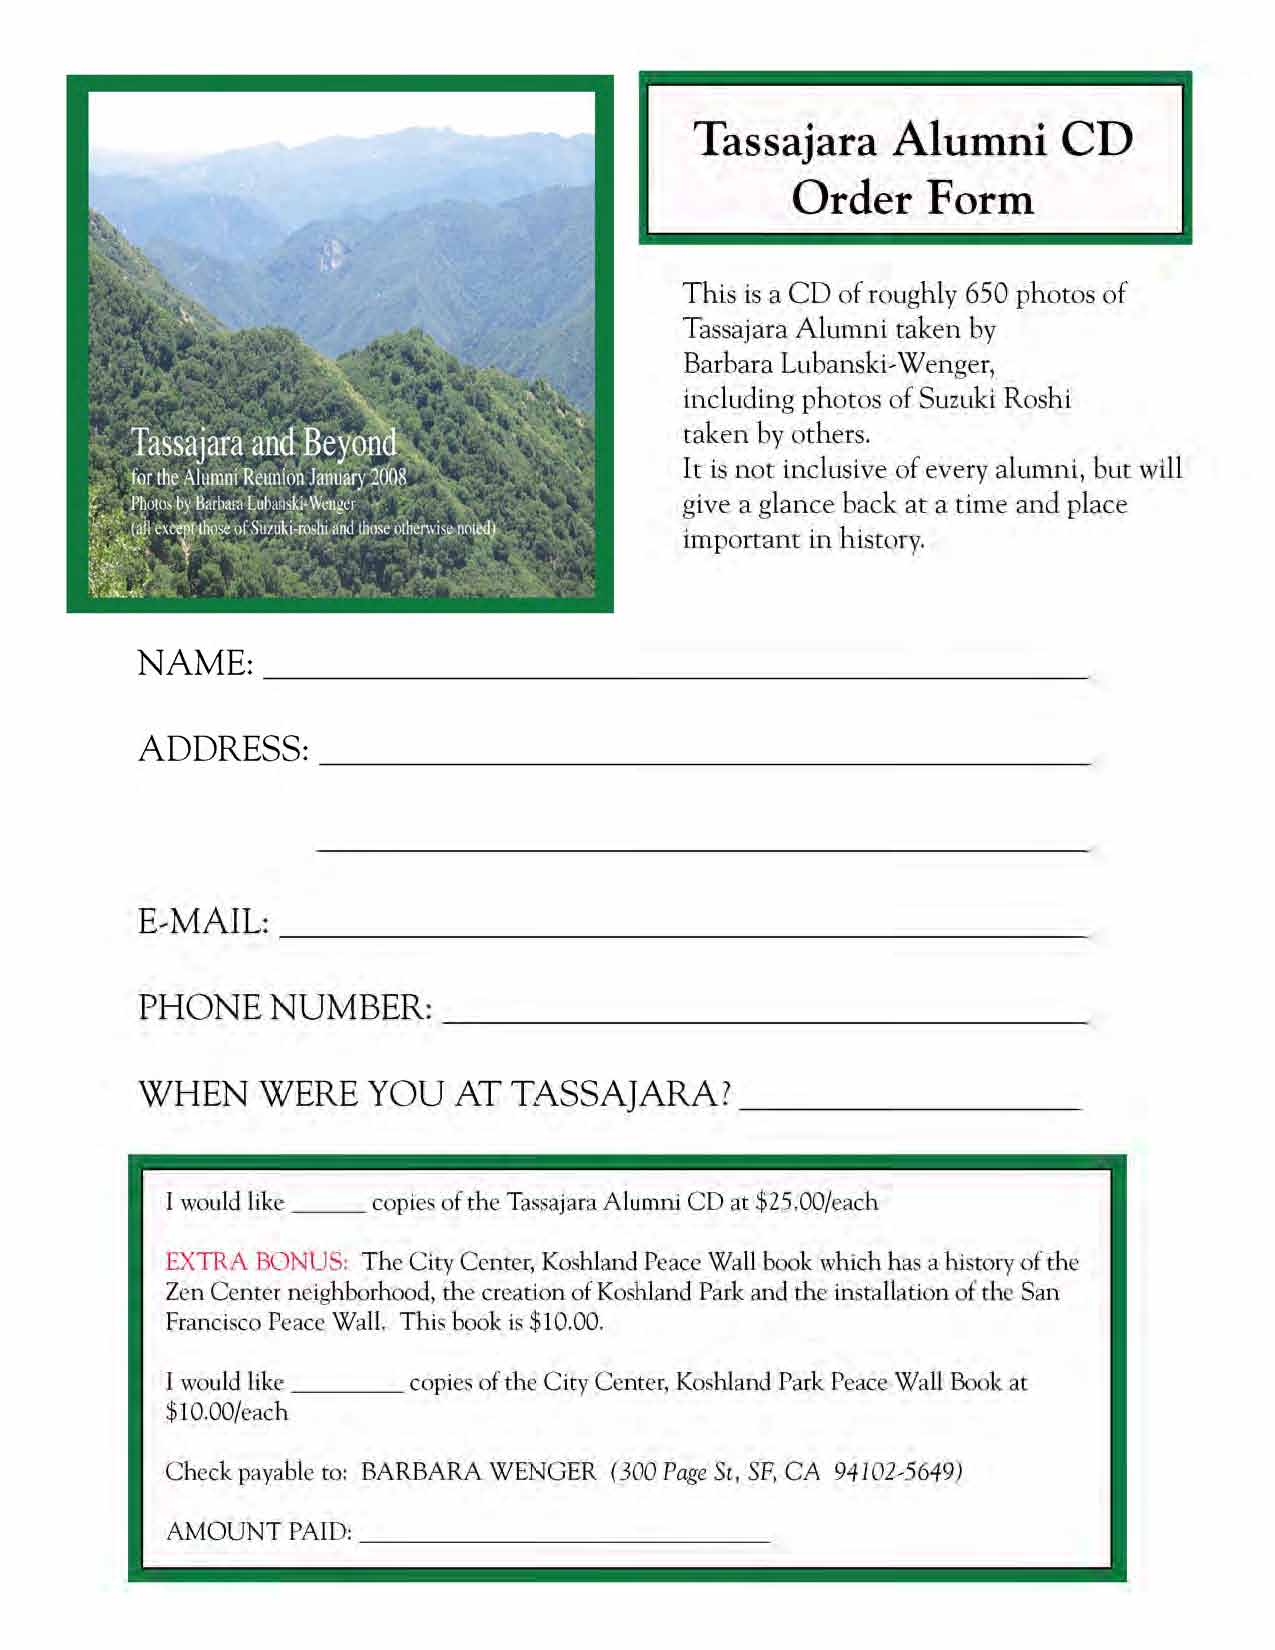 Cuke Sangha News - Cuke.com on ministry newsletters, ministry business cards, home clothing business forms, ministry flyers, ministry posters,